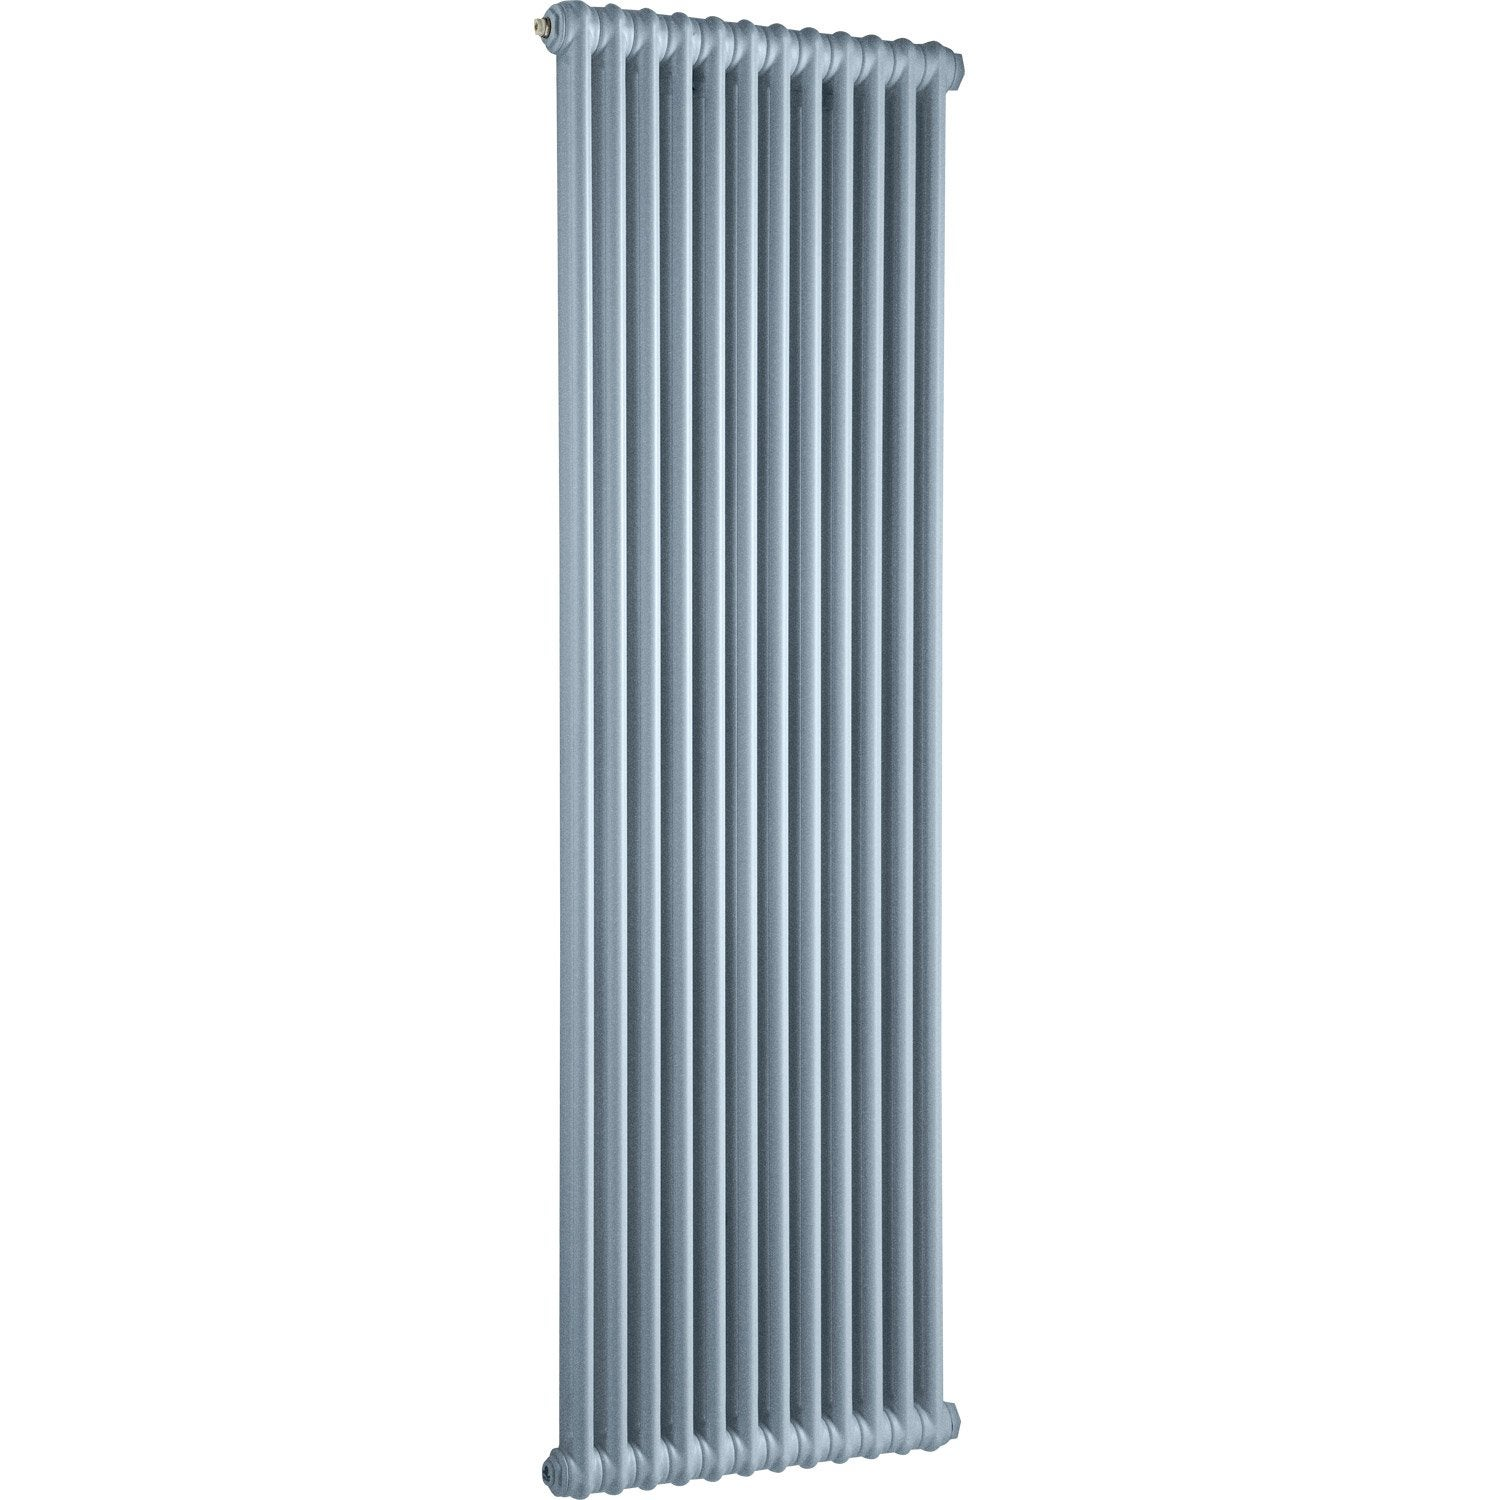 radiateur chauffage central tesi bleu cm 1491 w. Black Bedroom Furniture Sets. Home Design Ideas